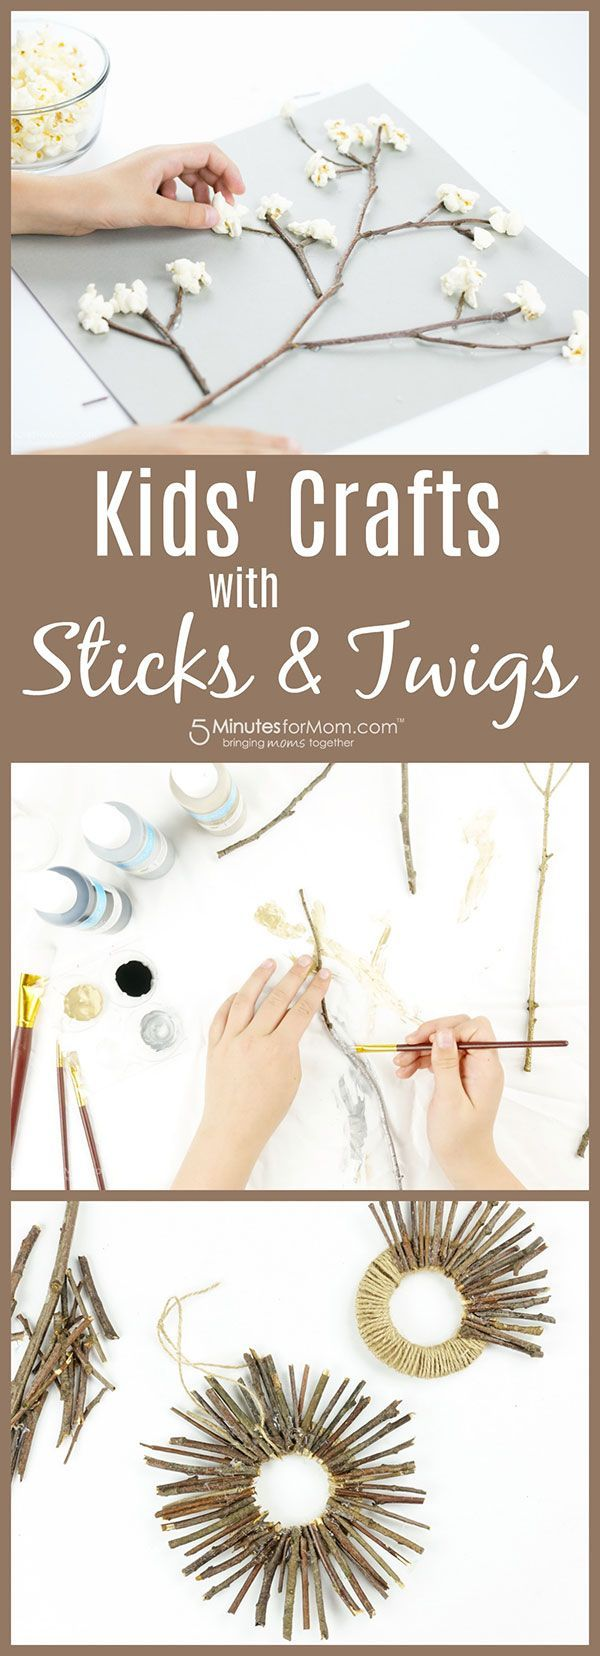 Kids Crafts with Sticks and Twigs